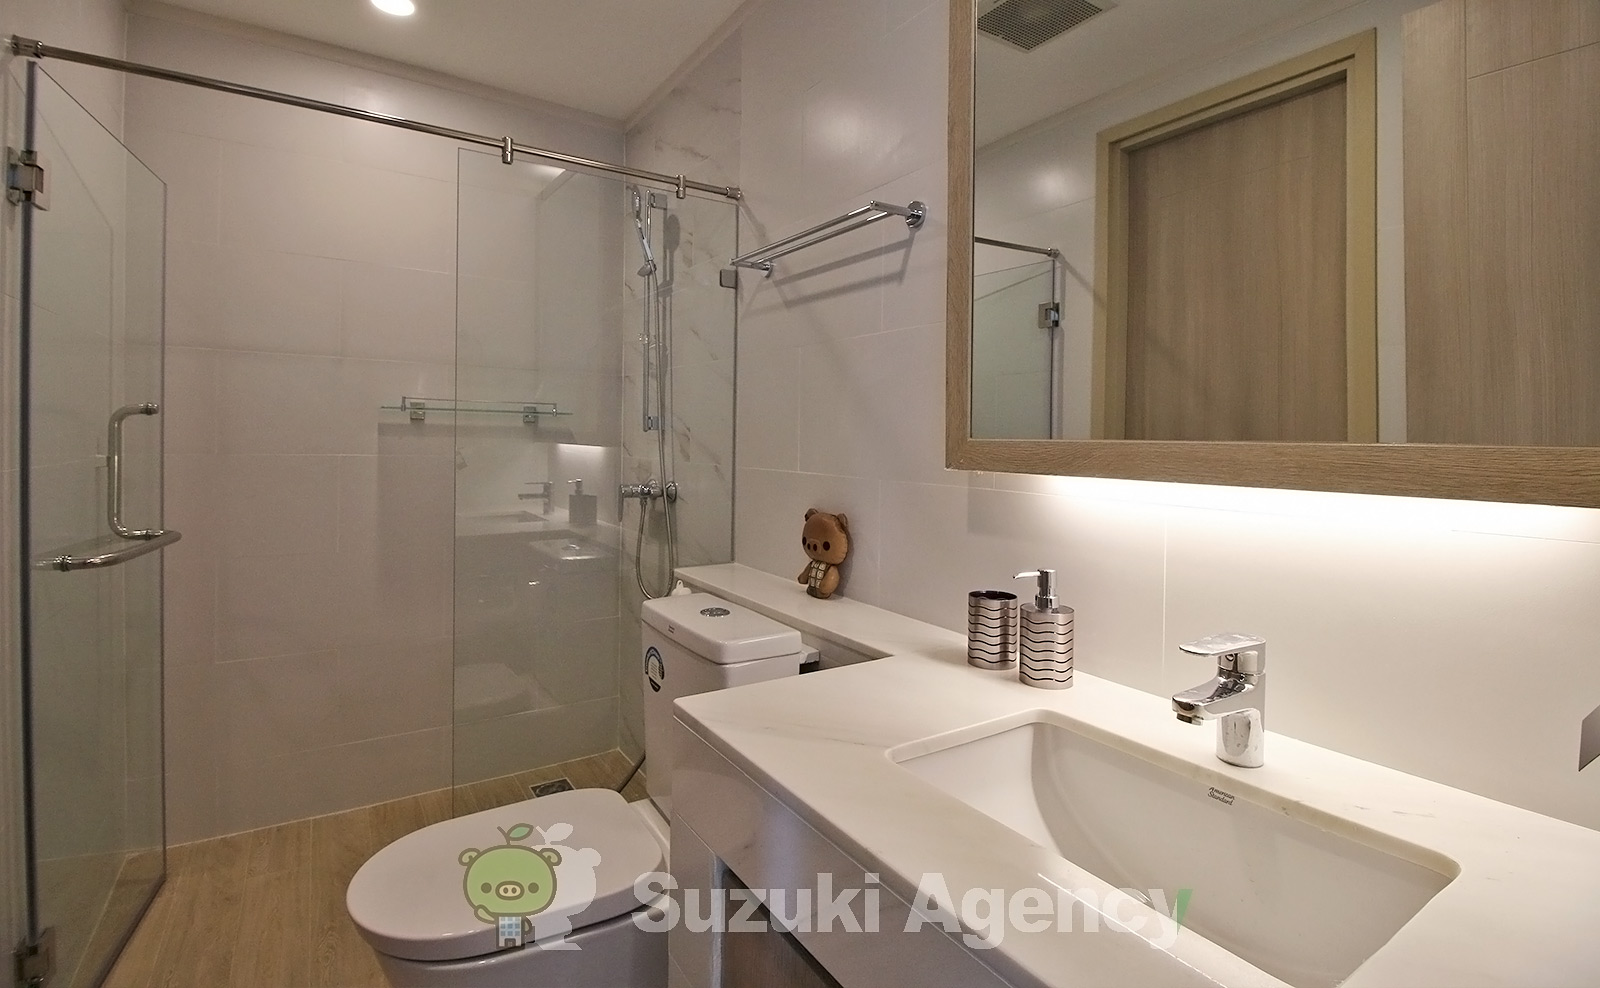 Serenity Thonglor:3Bed Room Photos No.12